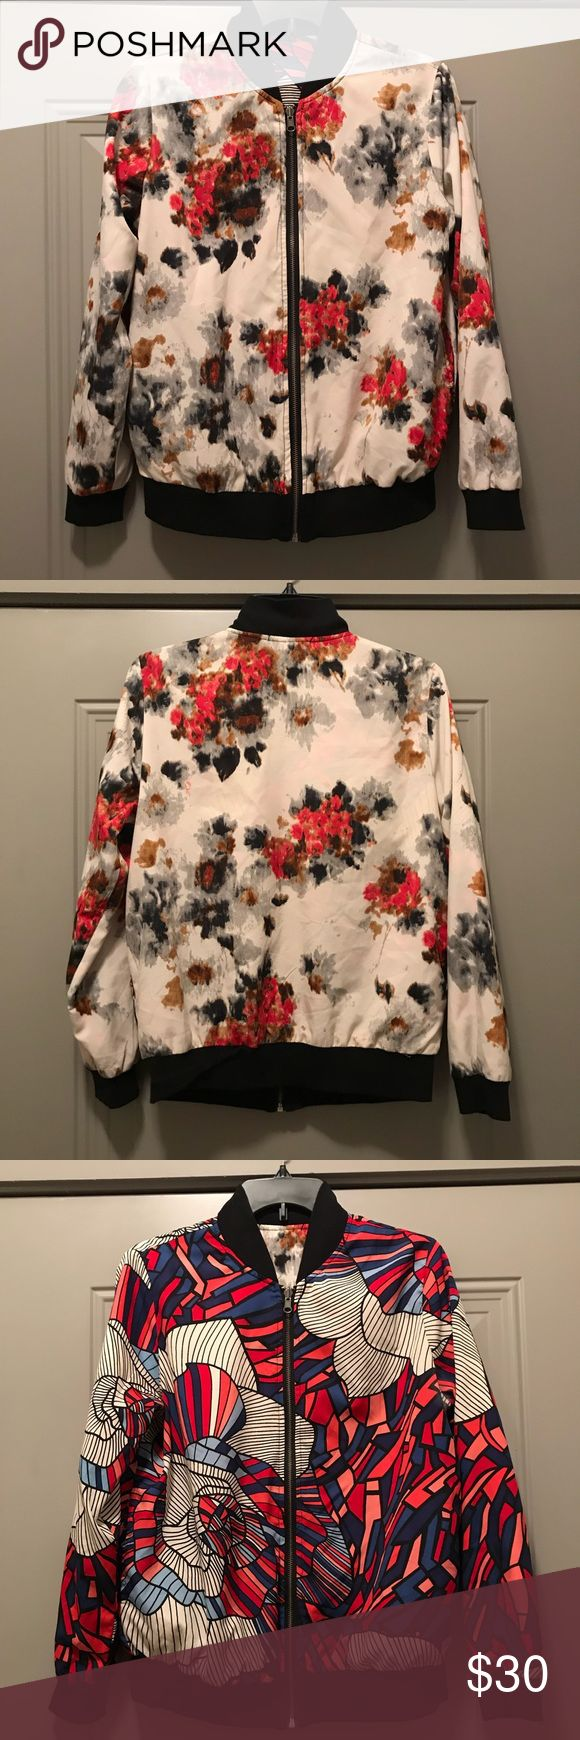 Reversible lightweight bomber jacket Floral print on side! Geometric print on the other! Flip zipper! Pockets on both sides! Get two looks for one price ! No tag due to reversible nature. Will fit a medium or large! Jackets & Coats